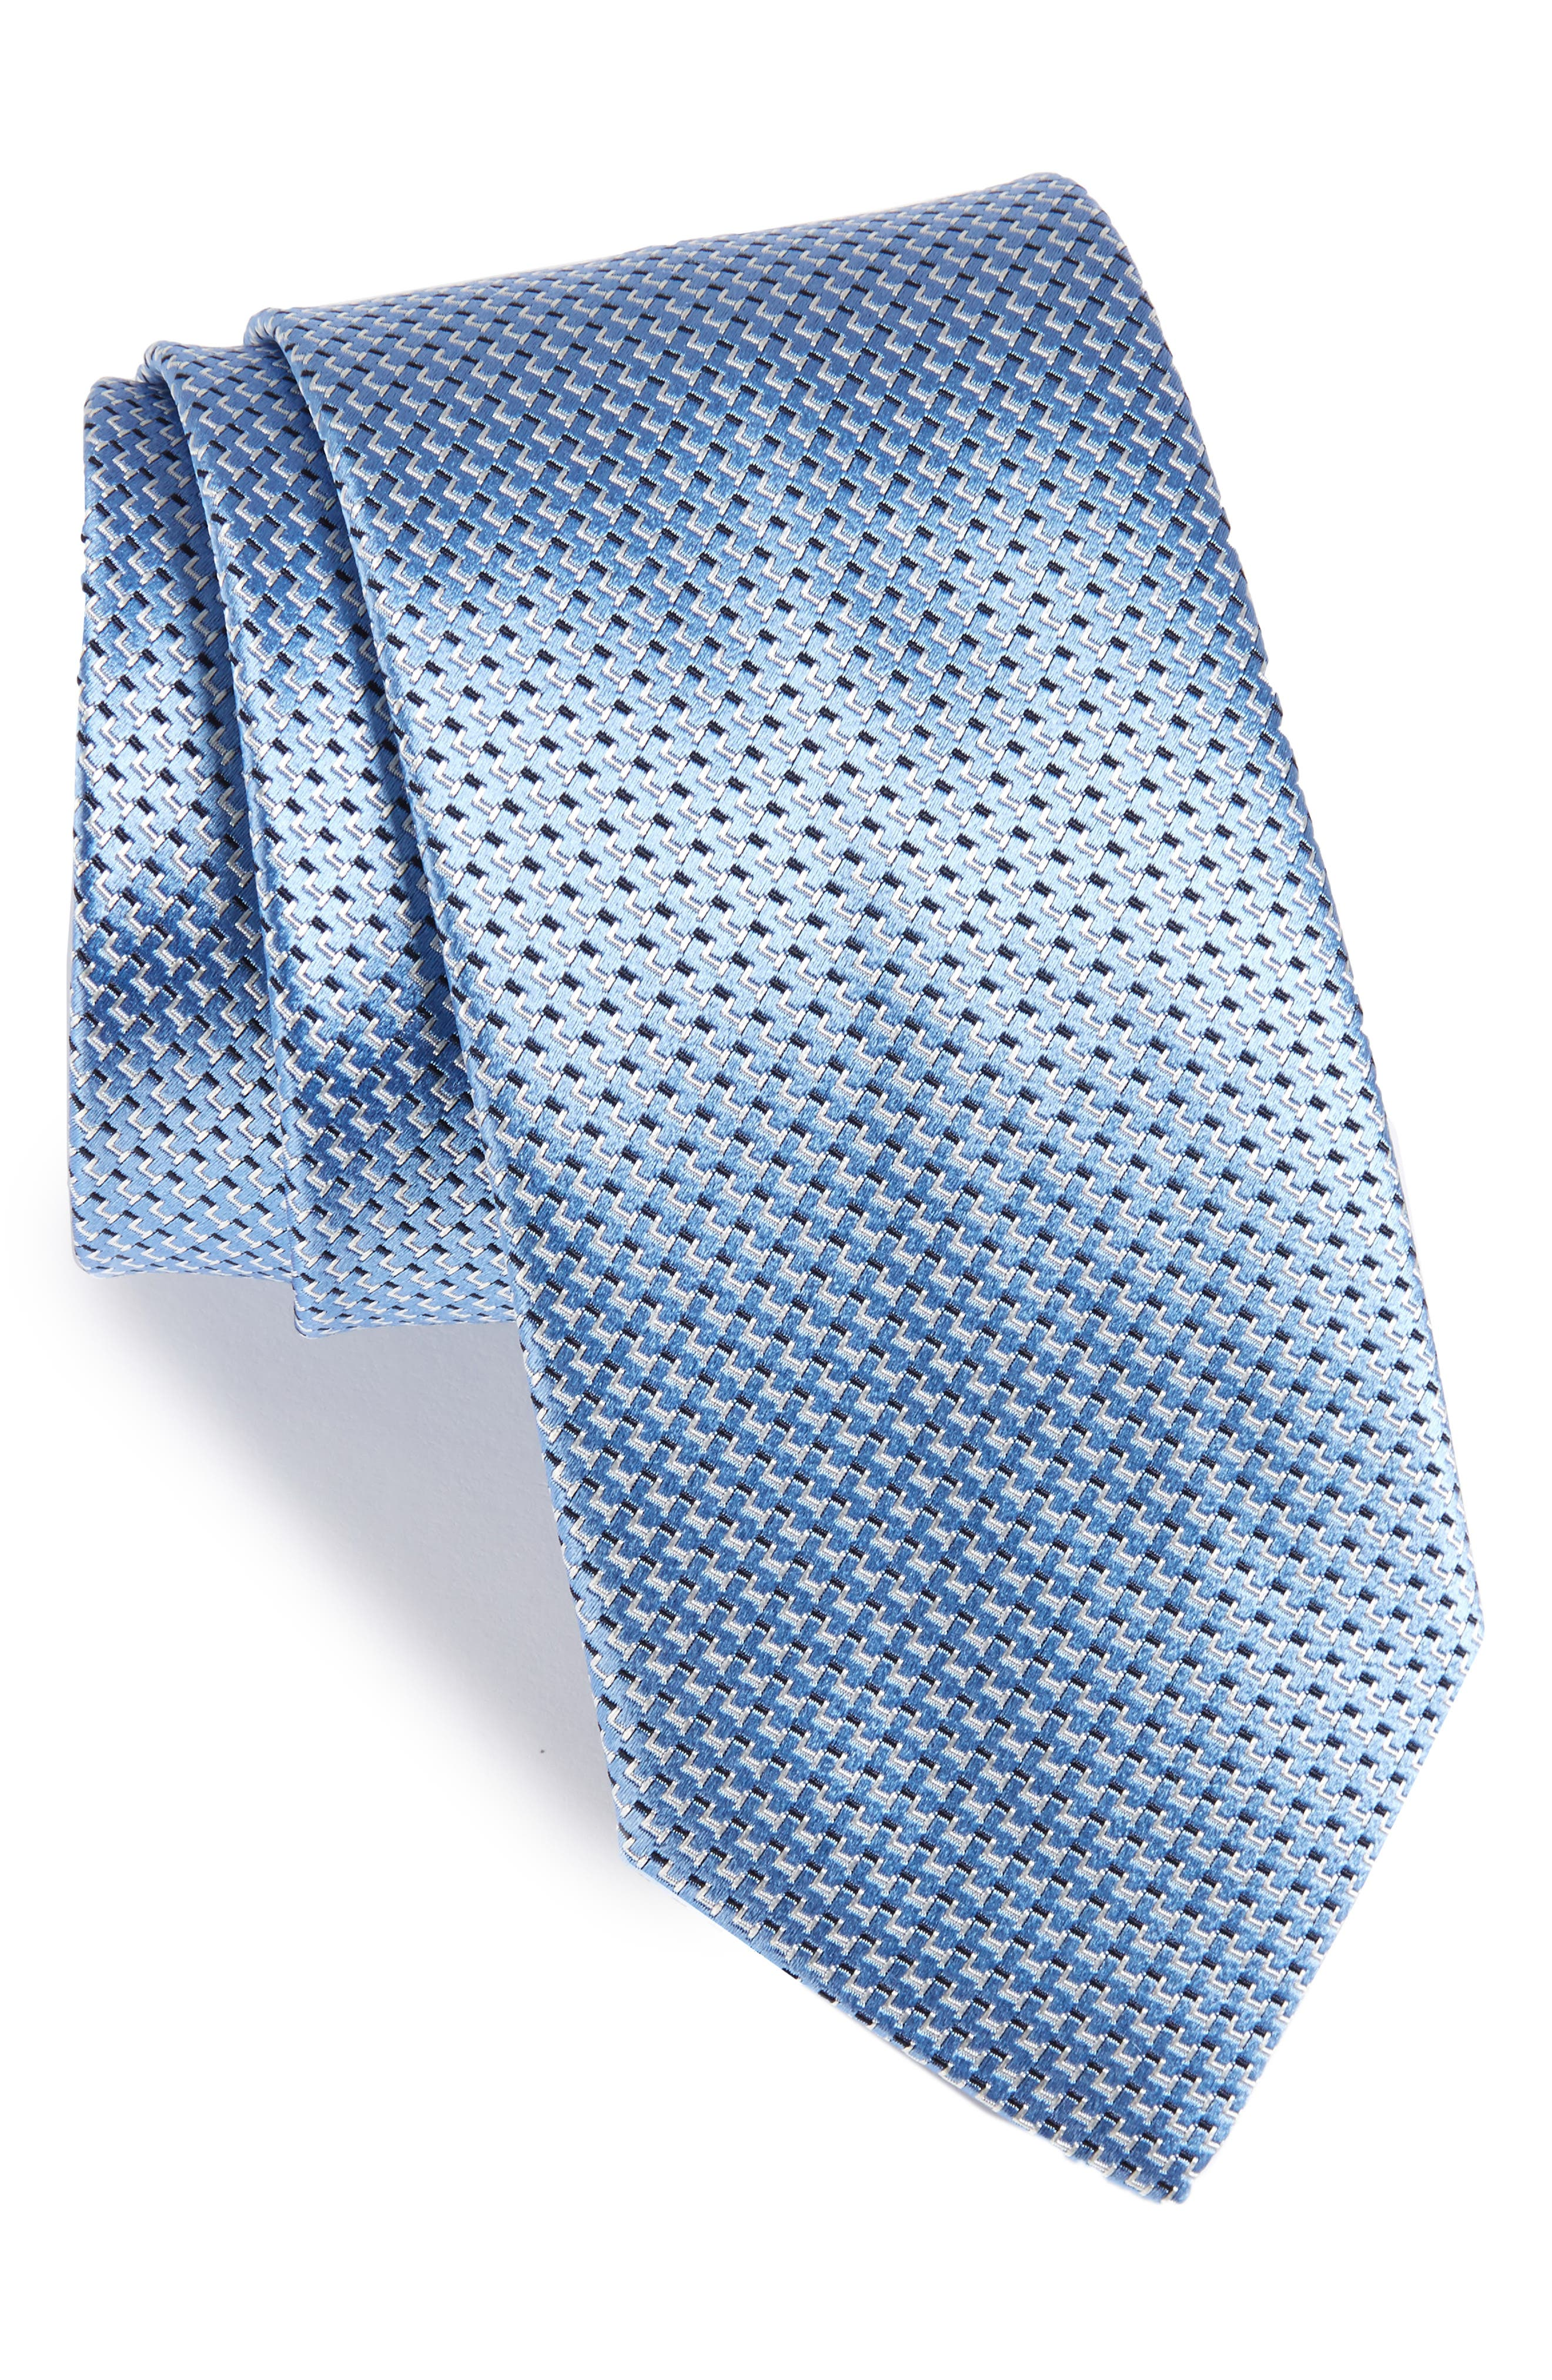 Solid Silk Tie,                             Main thumbnail 1, color,                             450